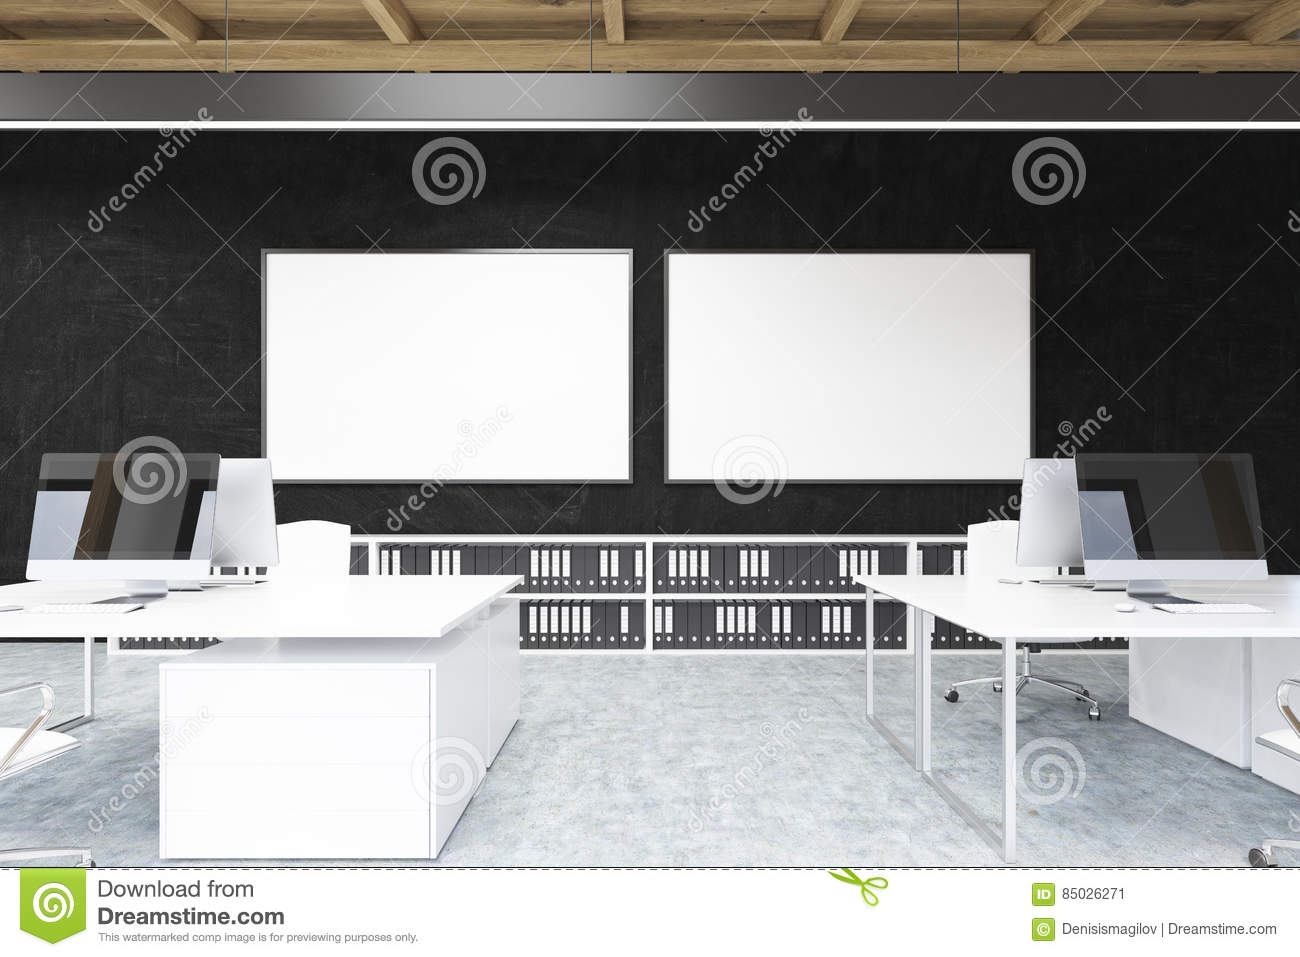 Two large horizontal posters hanging on a black office wall there are white tables with laptops on them and shelves with folders near the wall